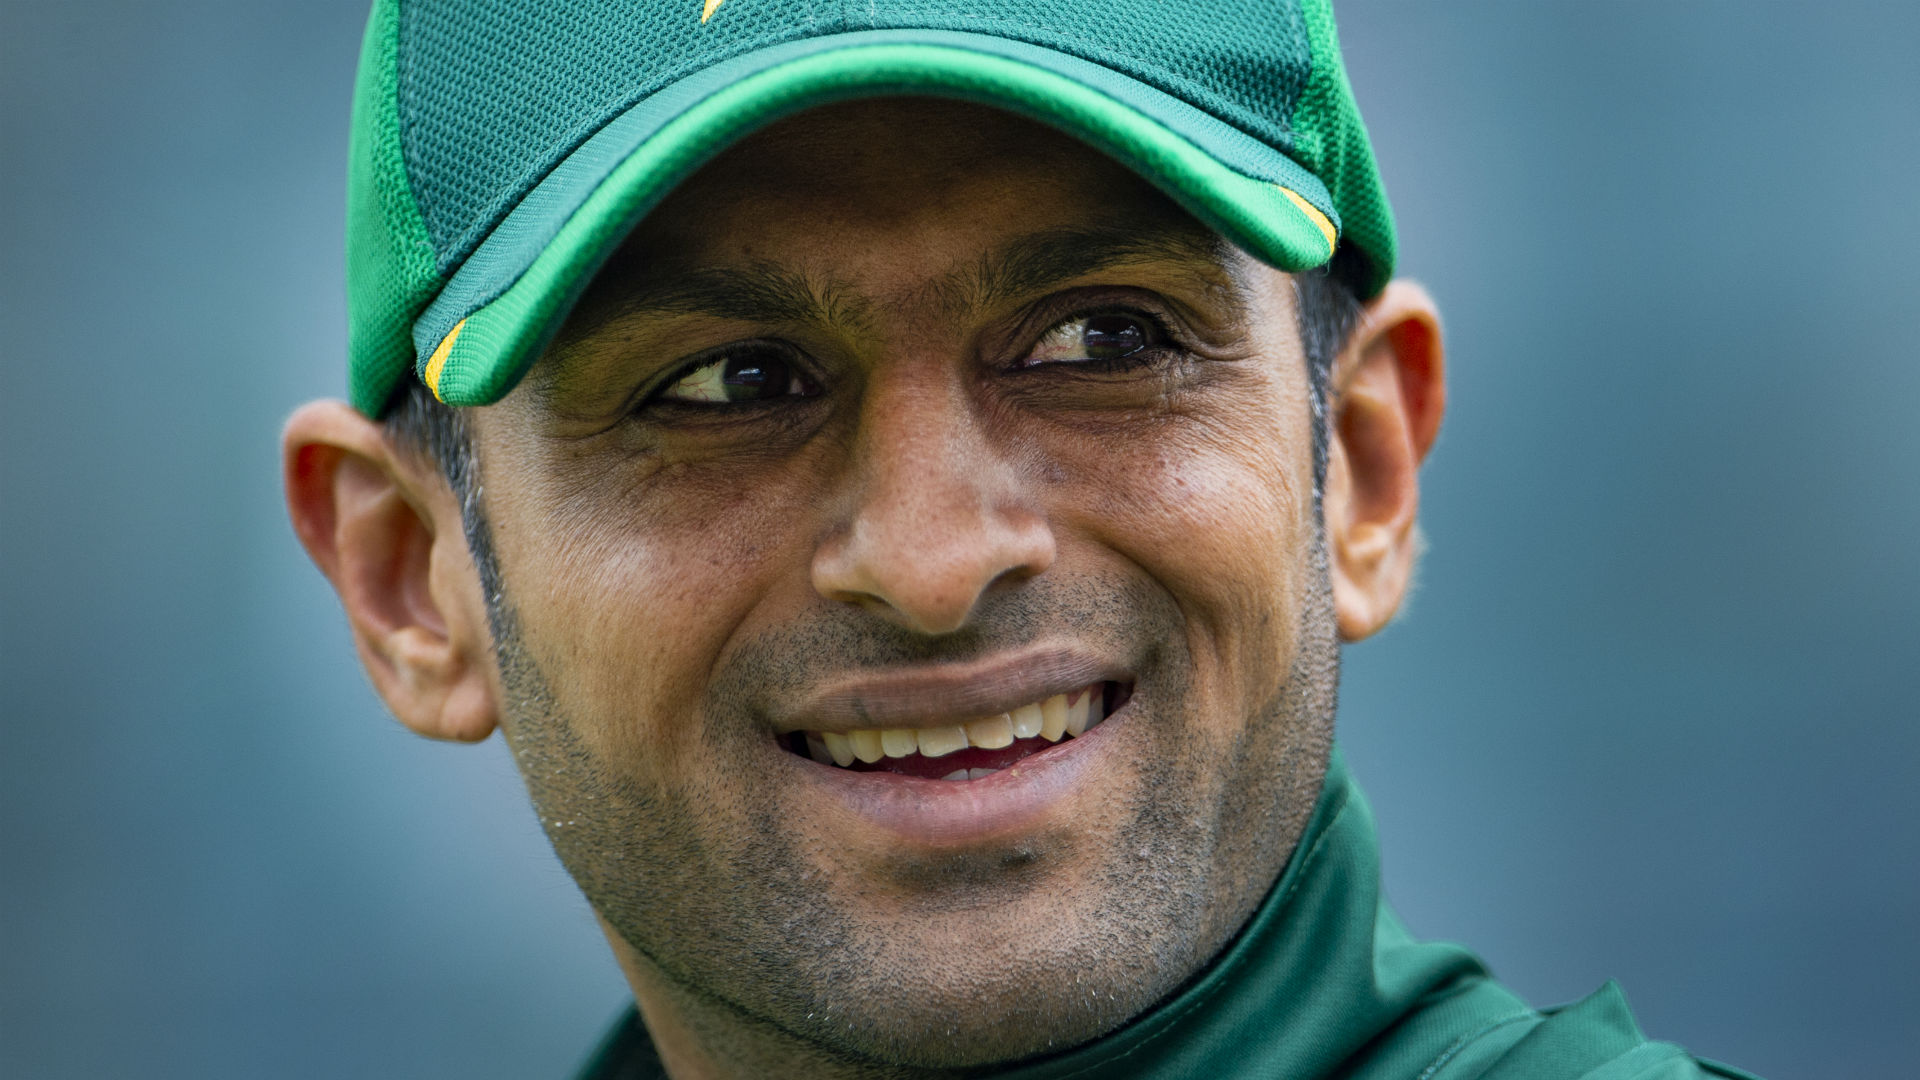 Pakistan all-rounder Shoaib Malik safe and well after car accident